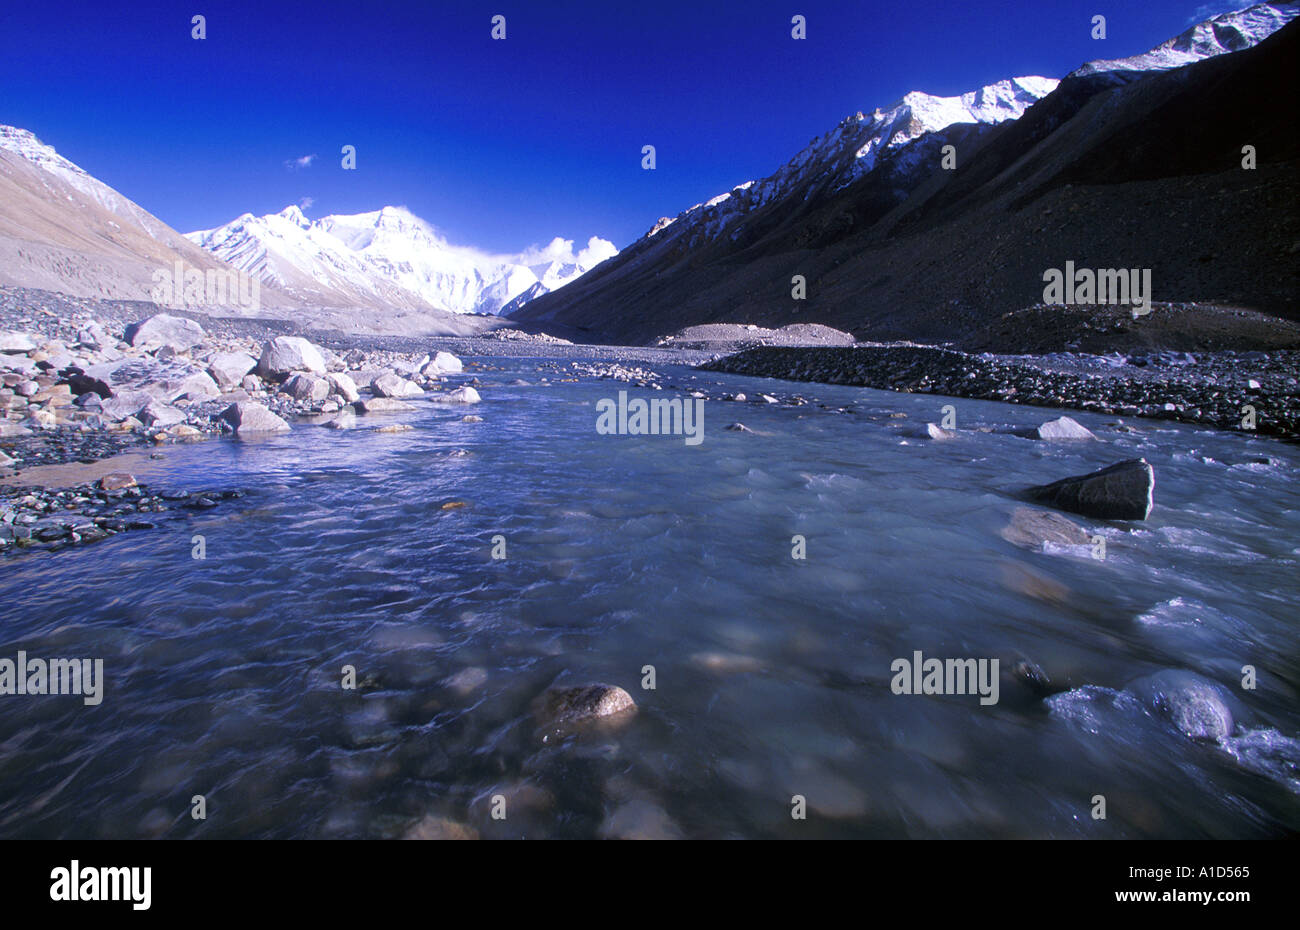 View of the north face of Mount Everest from the Rongbuk Valley in Tibet - Stock Image